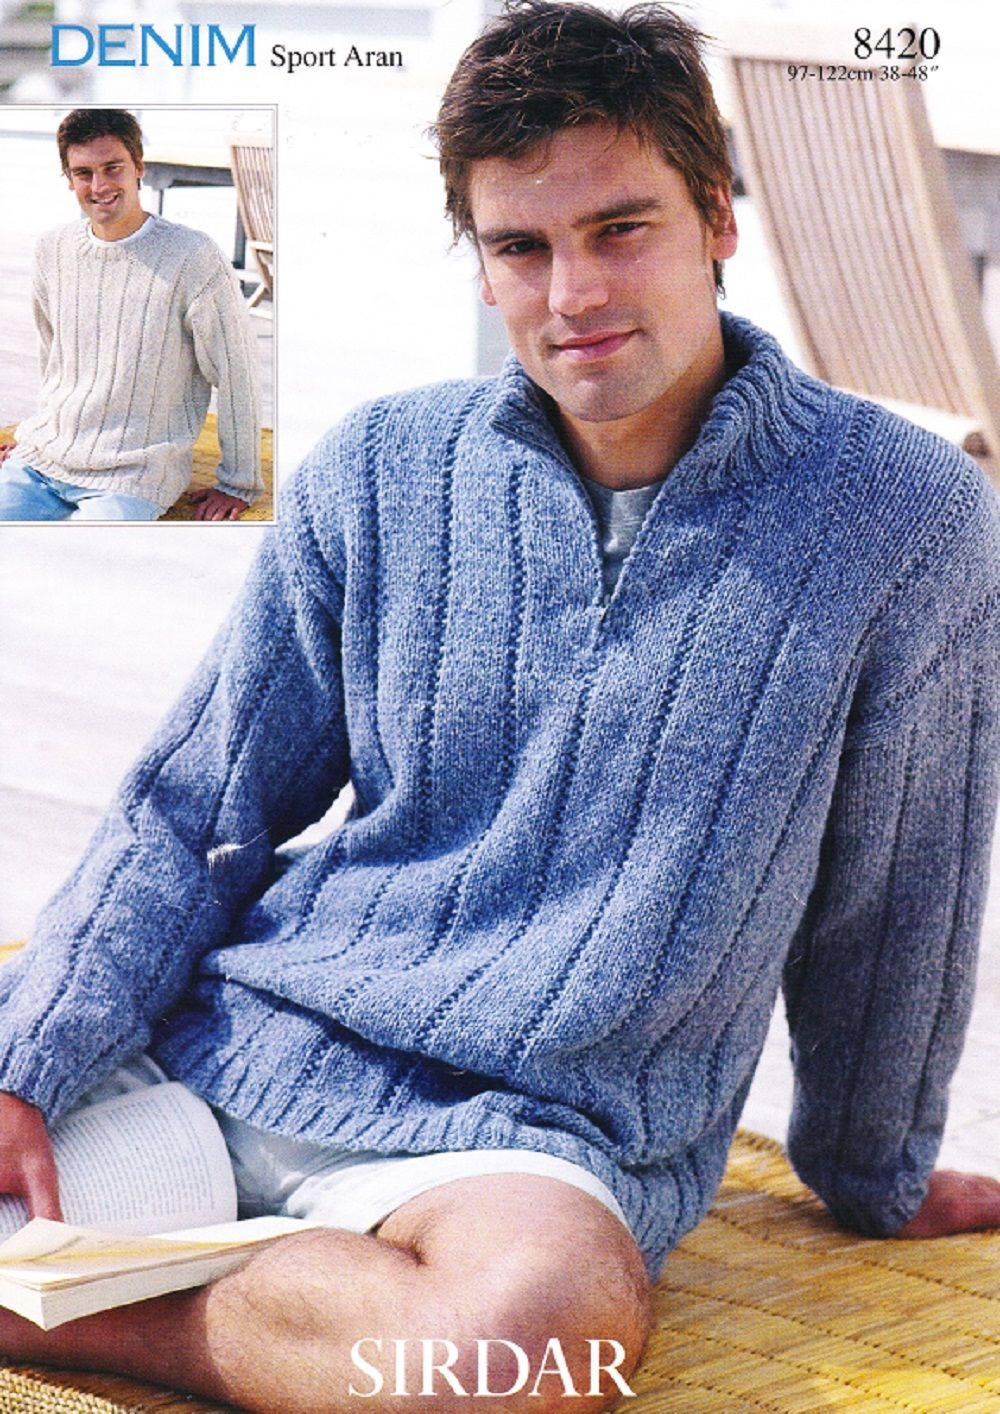 Sirdar Knitting Pattern 8420, Aran, Mans Round & Zip Neck Sweaters ...